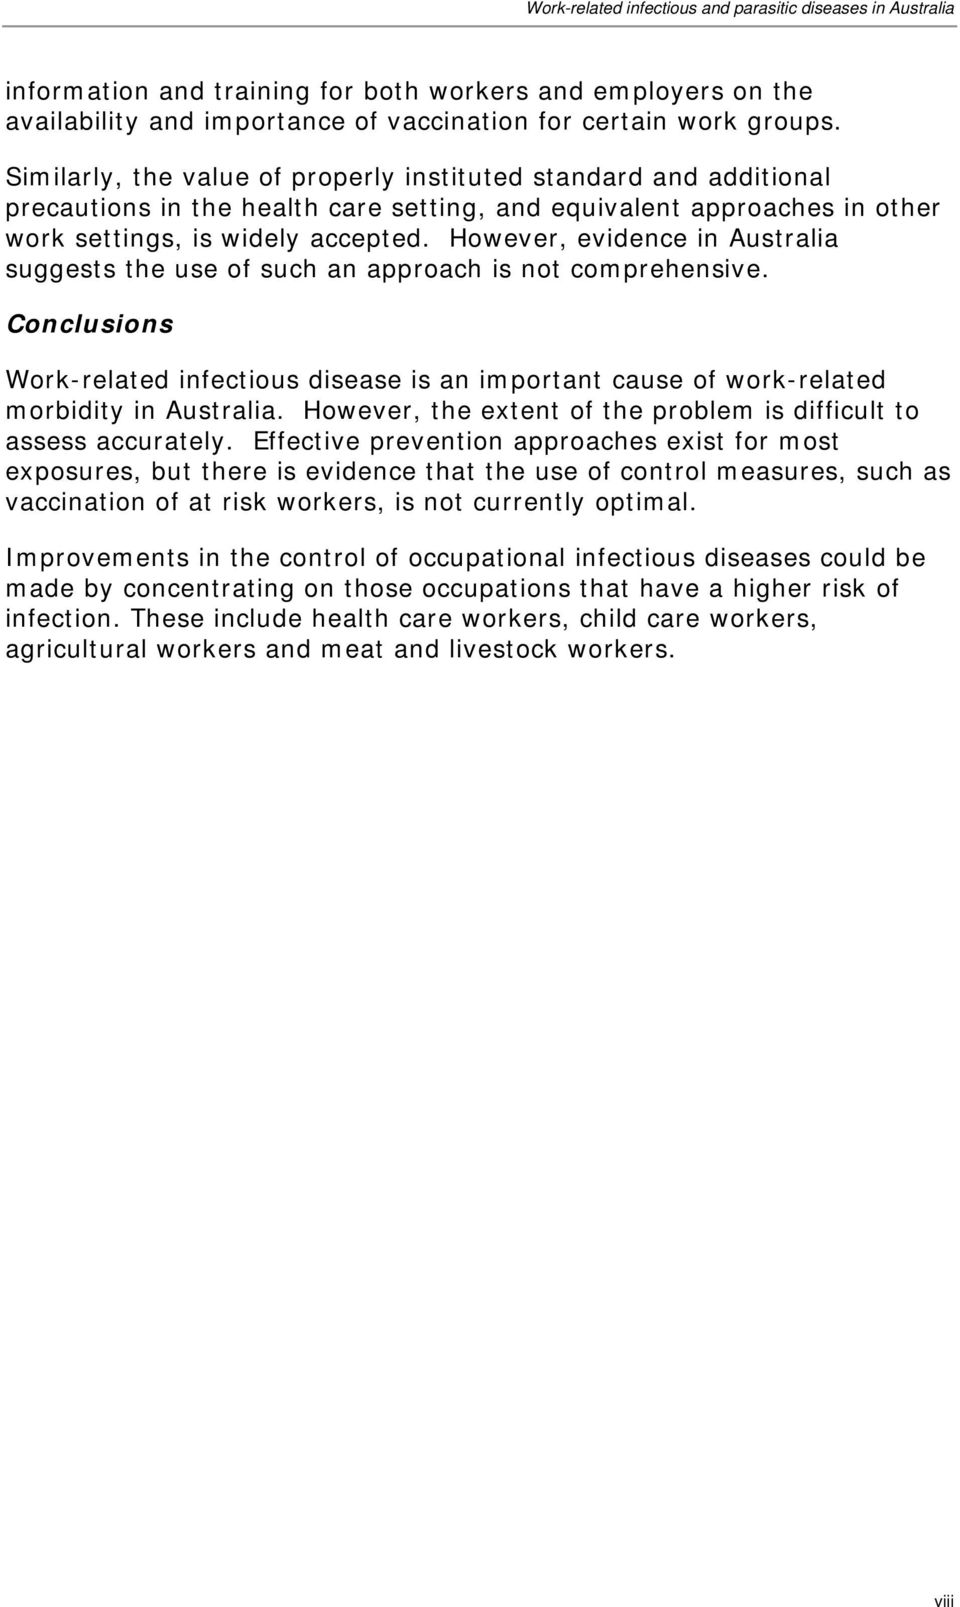 However, evidence in Australia suggests the use of such an approach is not comprehensive. Conclusions Work-related infectious disease is an important cause of work-related morbidity in Australia.